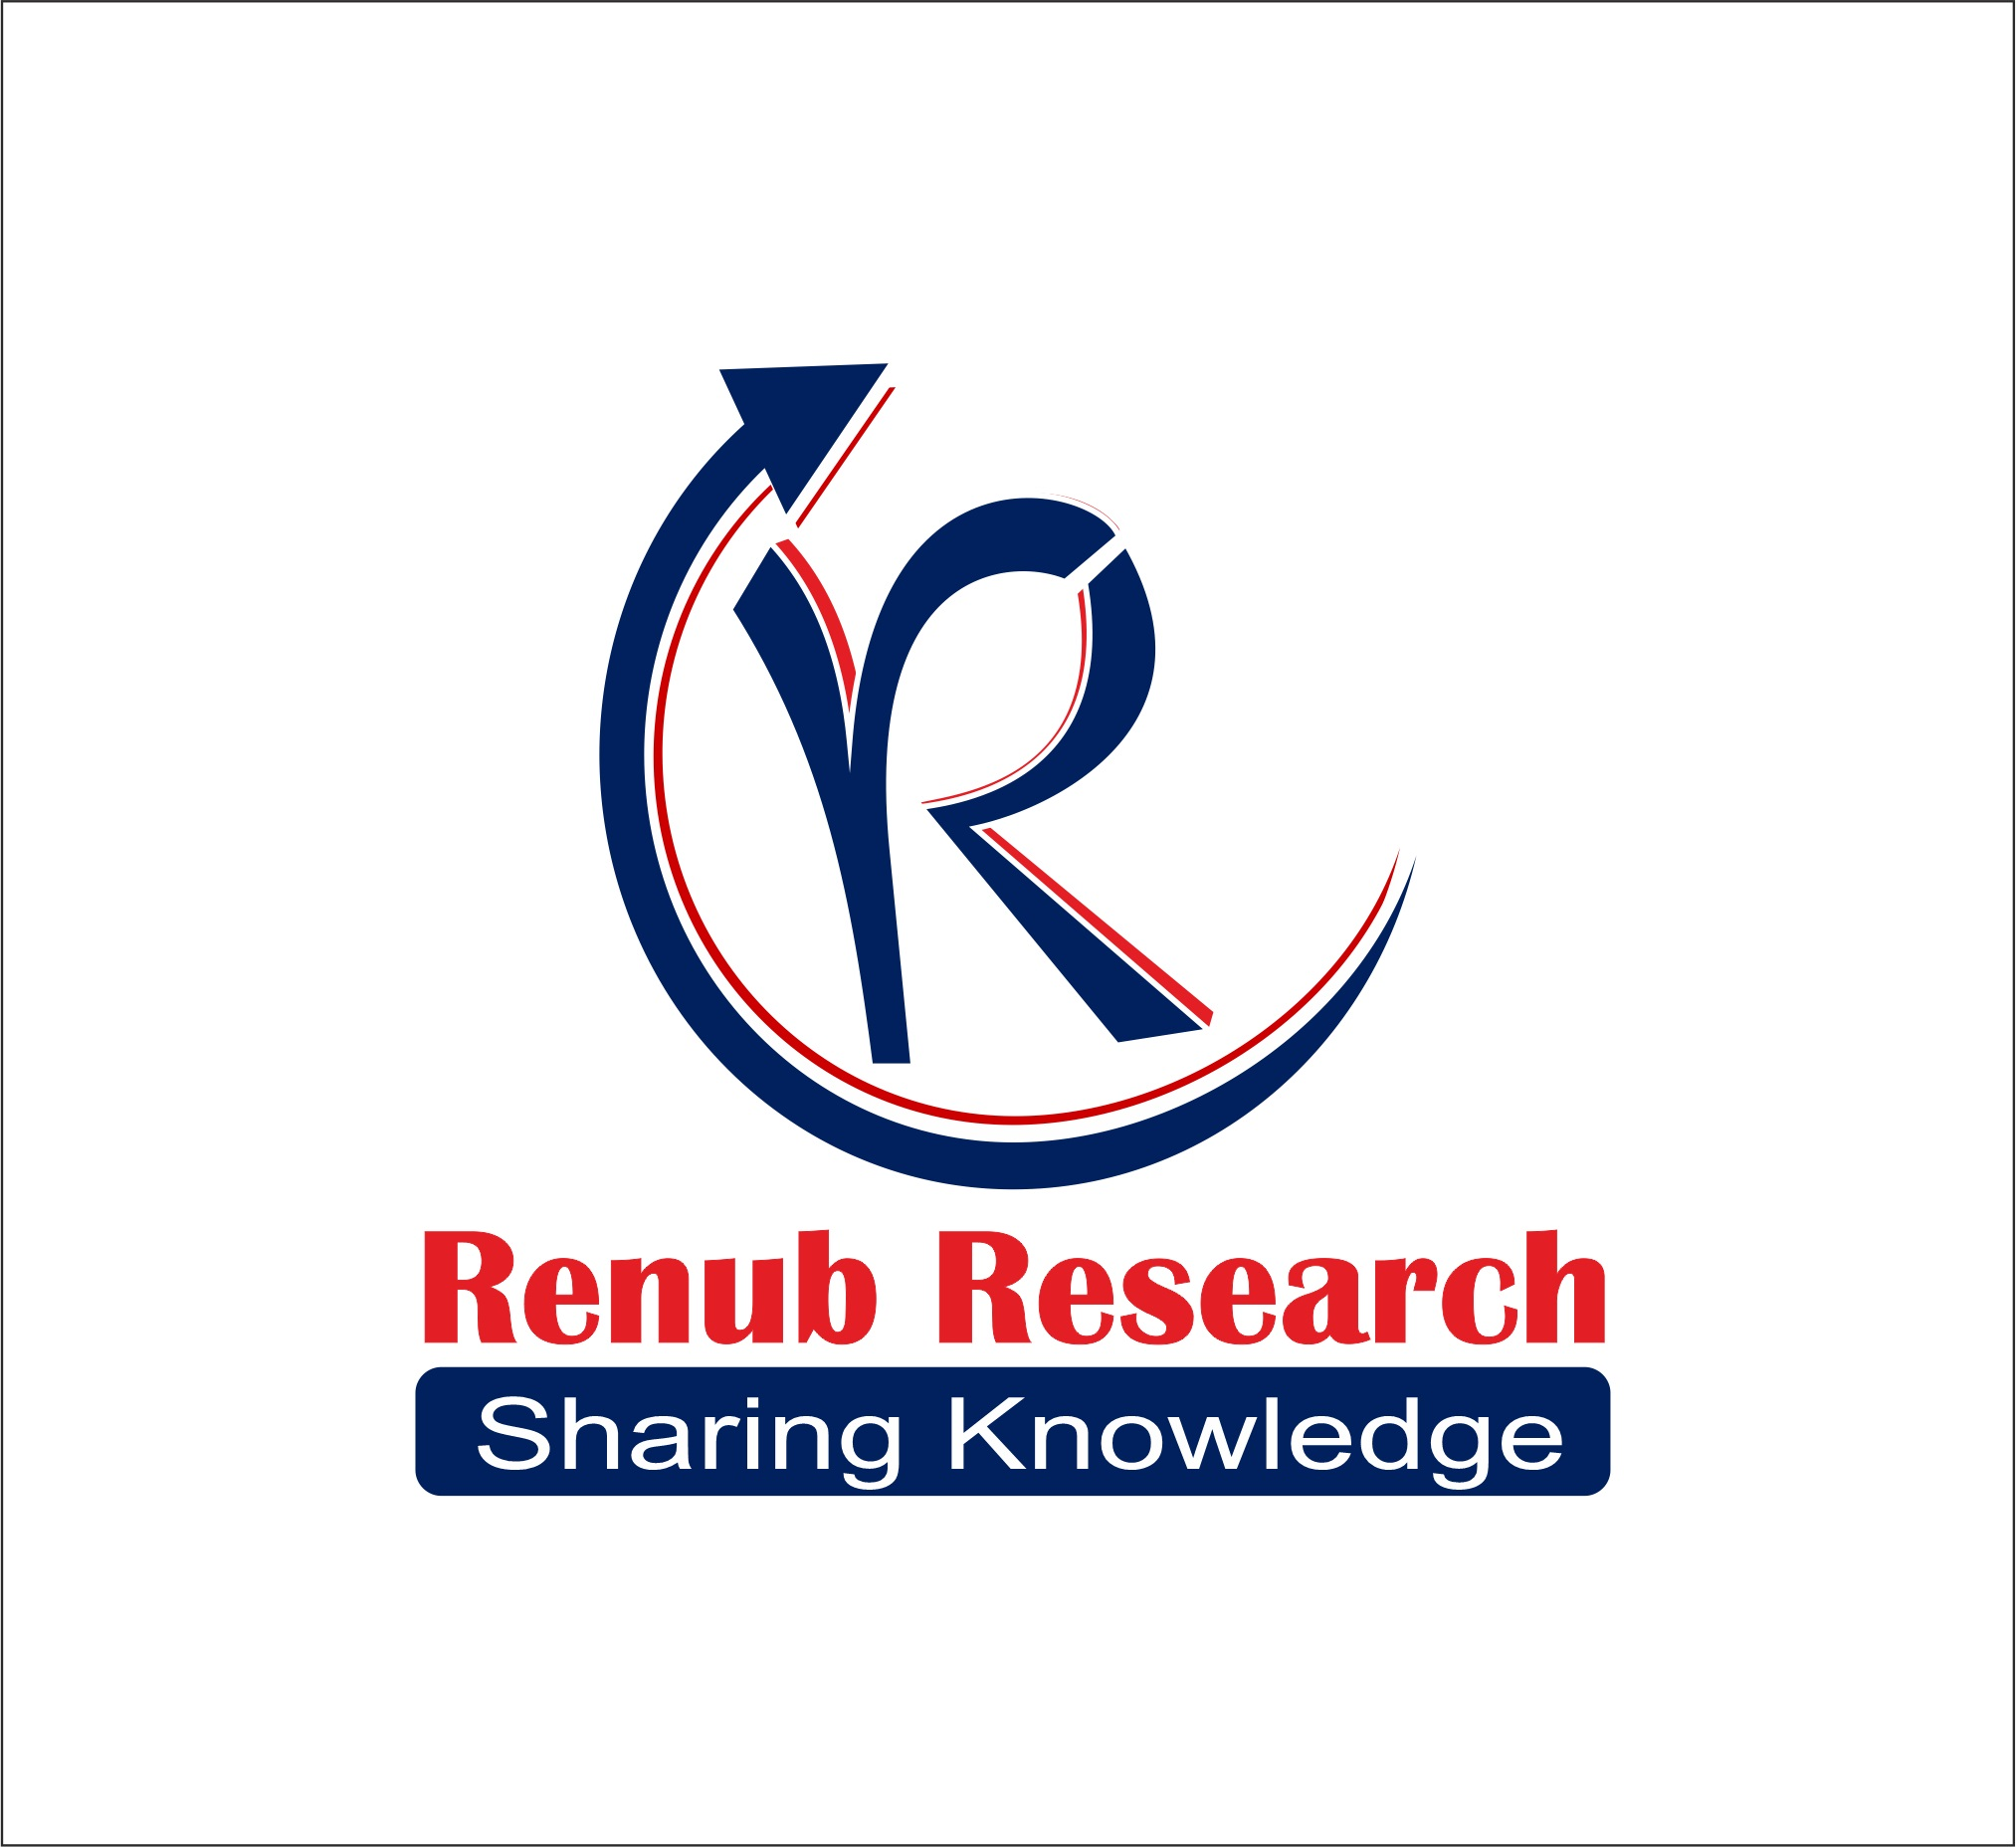 China Vaccine Market is projected to cross USD 9 Billion mark by the end of the year 2025 - Renub Research